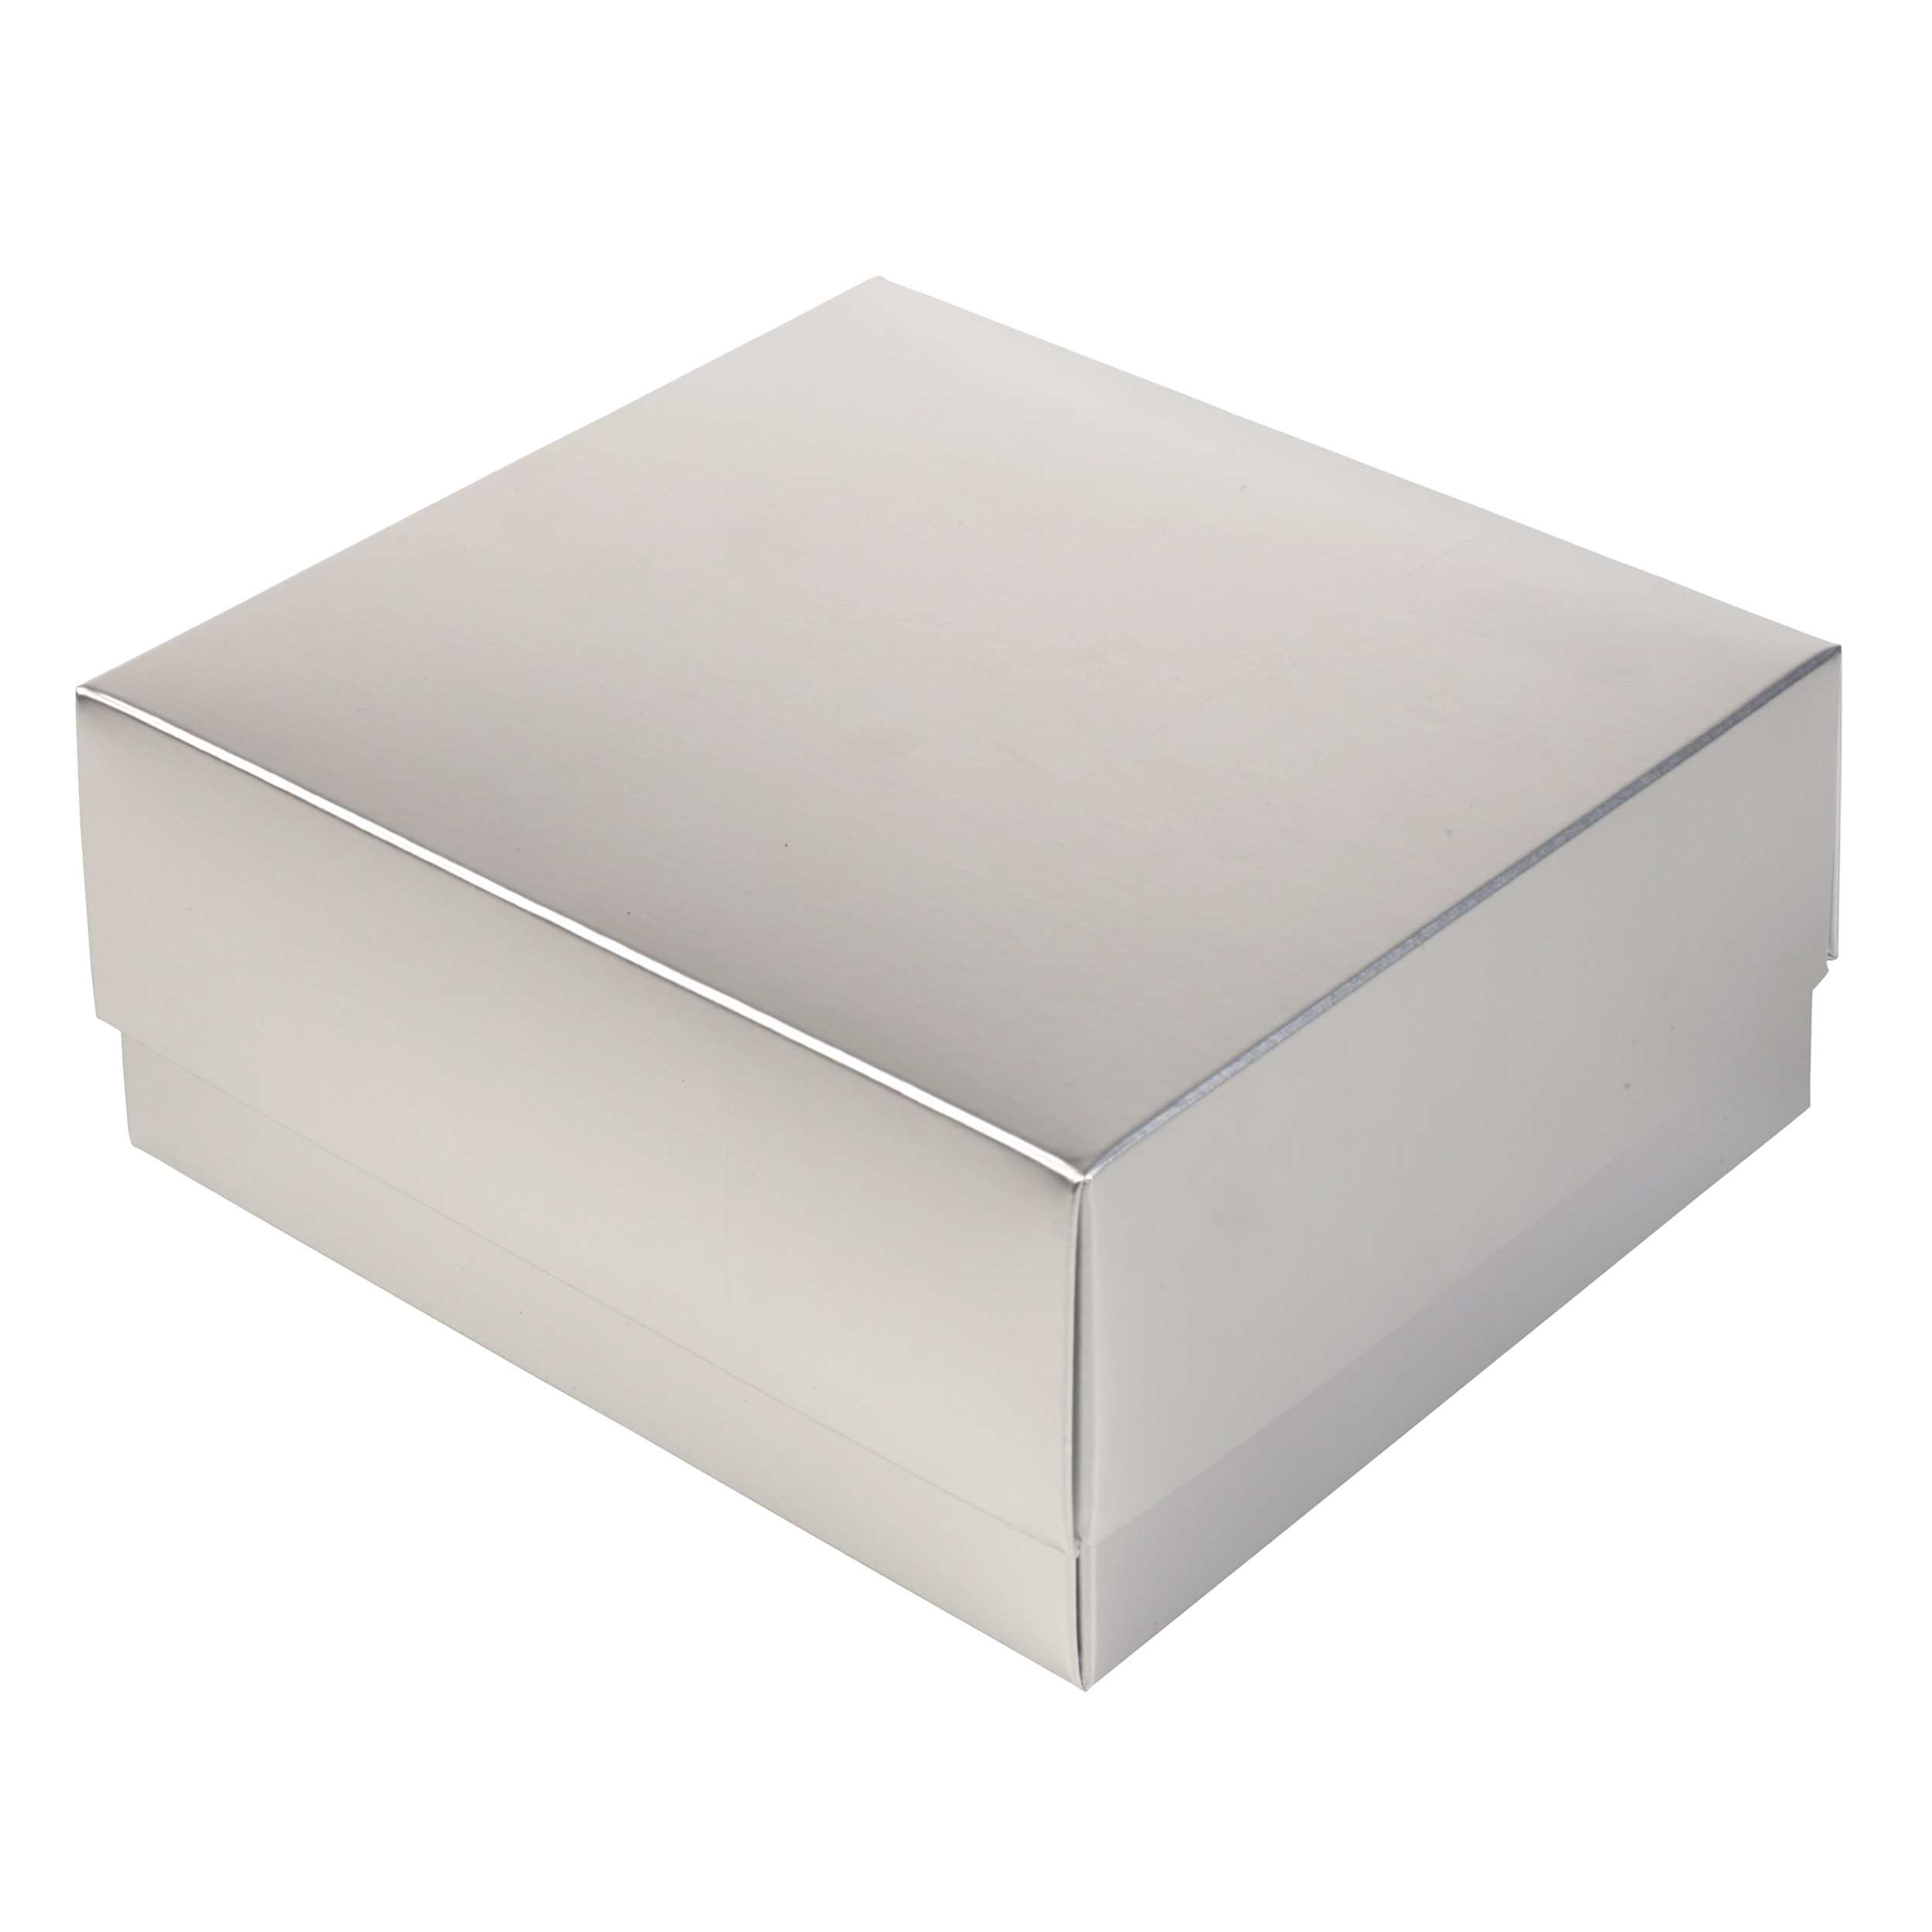 Plastic storage boxes are perfect for decluttering clothes, storing away children's toys, organising paperwork or giving you more floor space within your home. Our storage boxes are designed to be nestable & stackable leaving you with more room space. Order online today for .